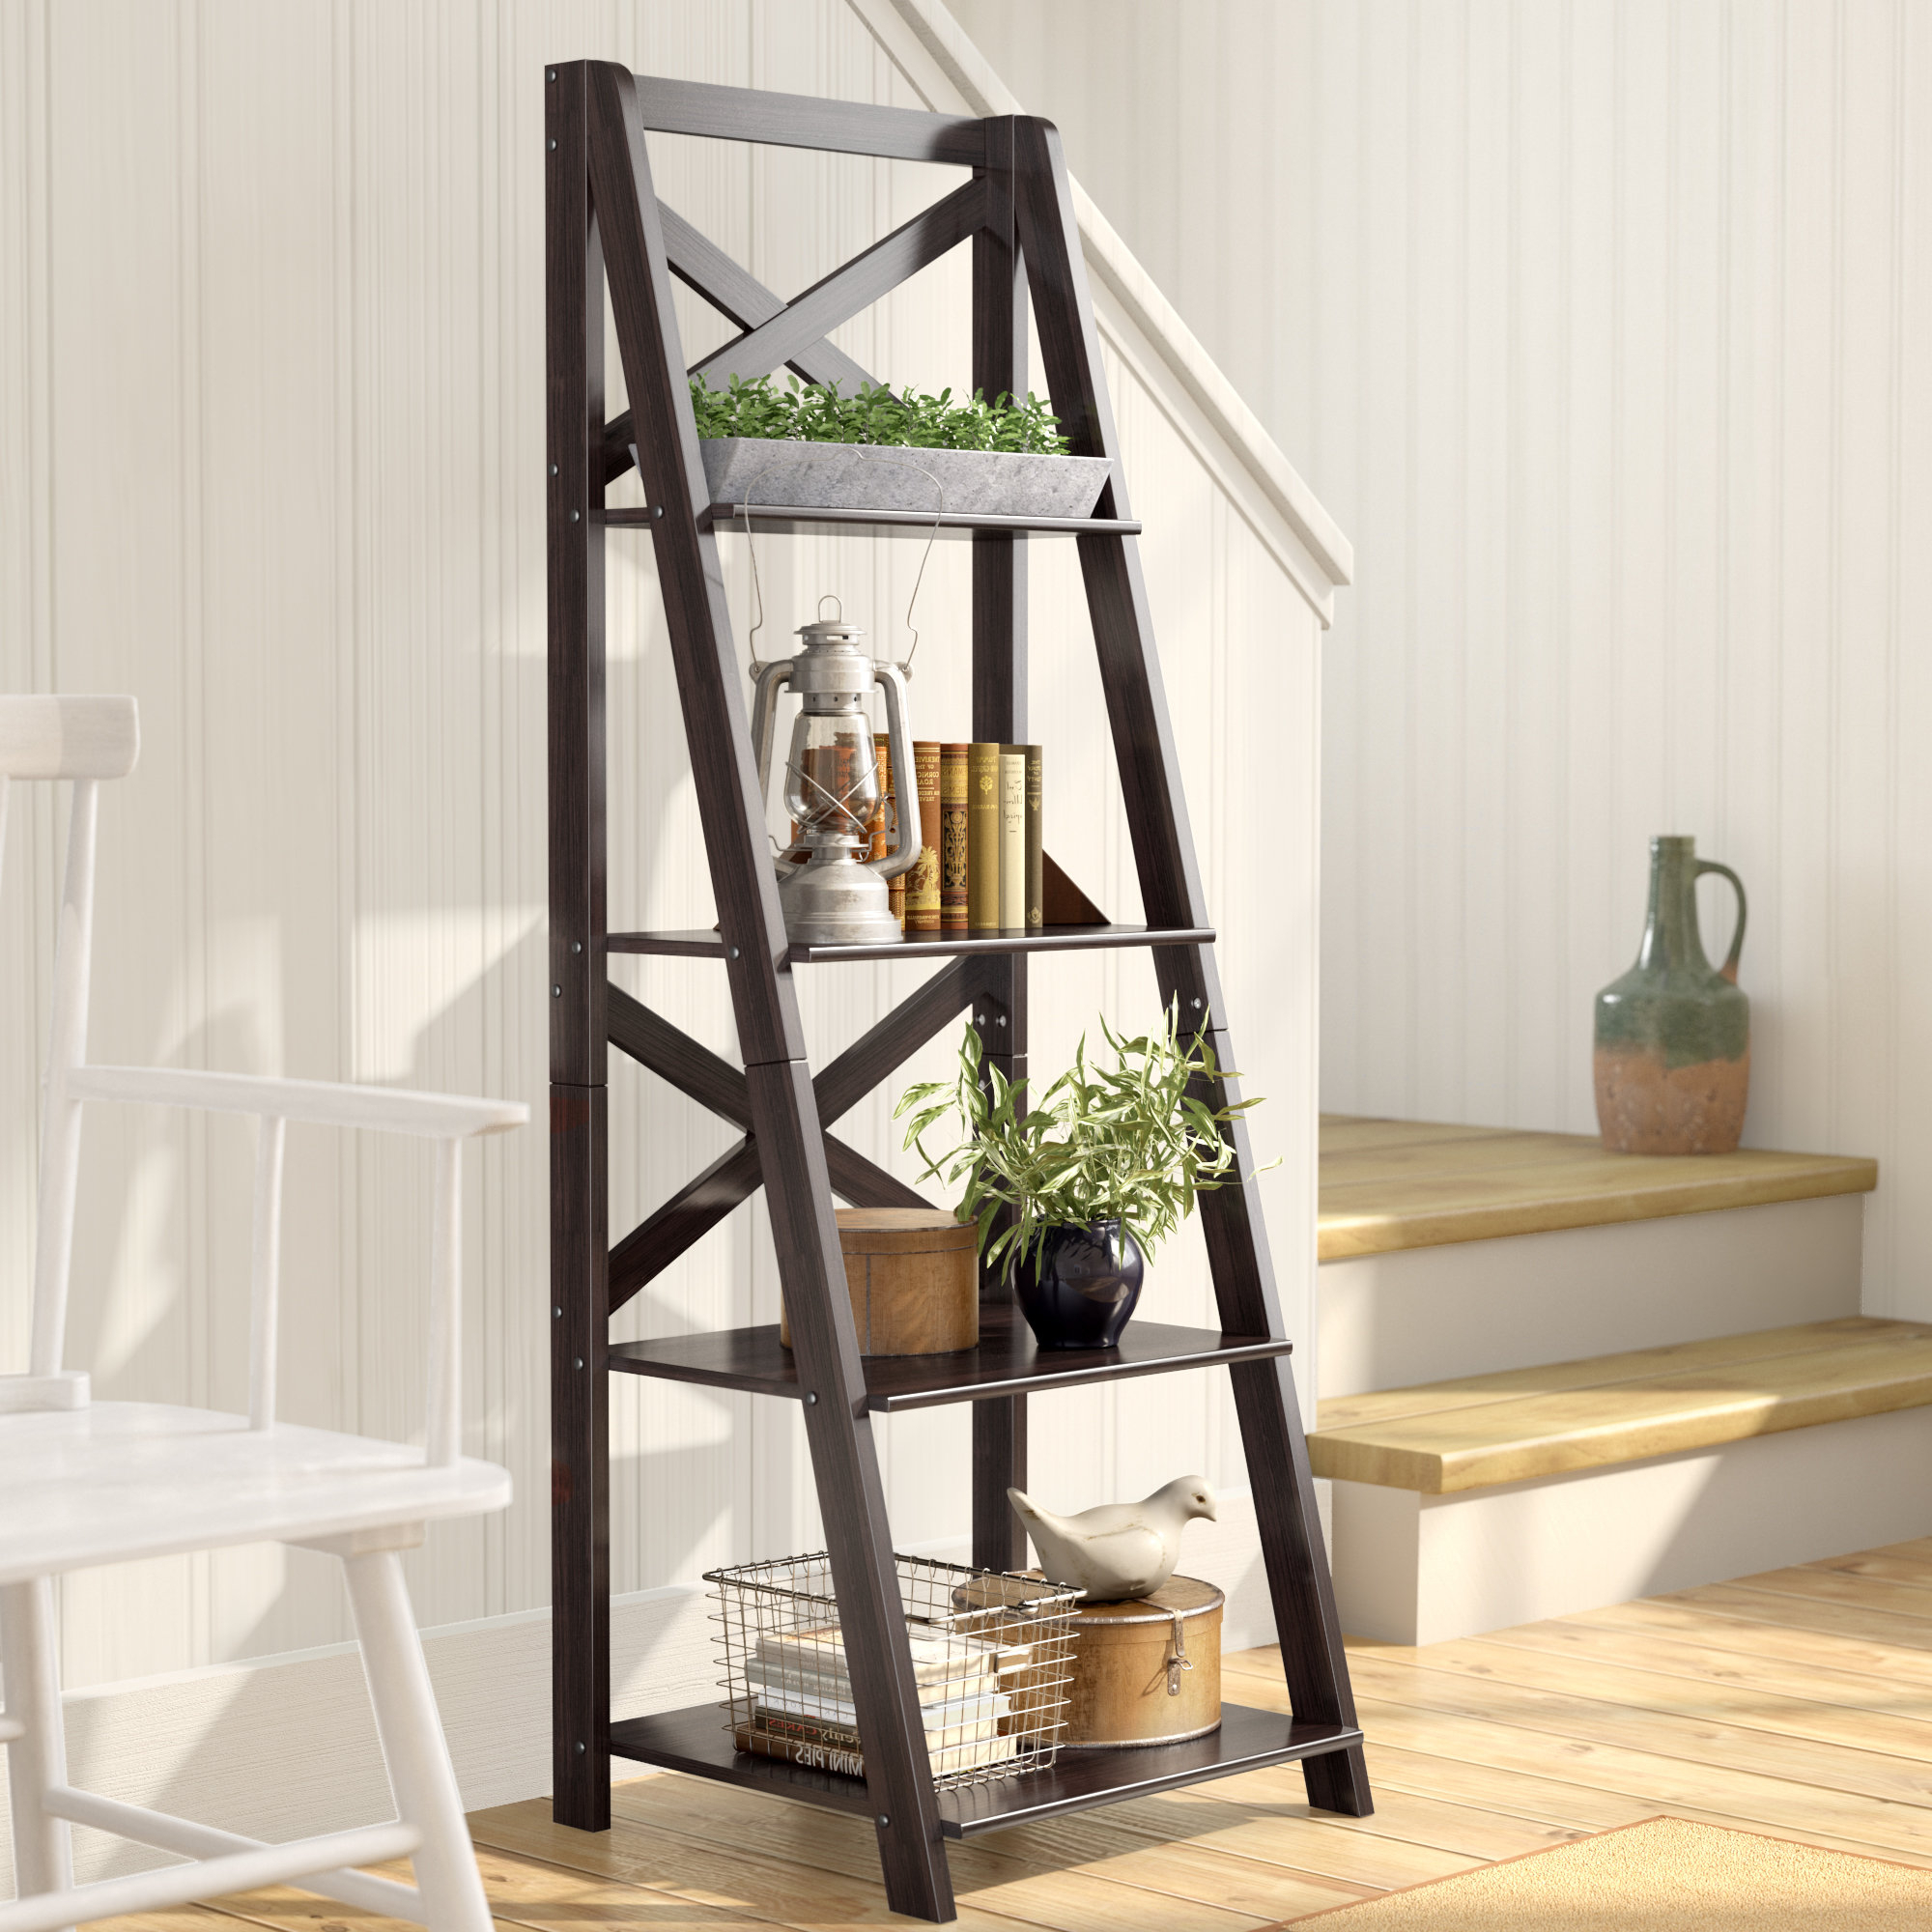 2020 Kaitlyn Ladder Bookcases Throughout Kaitlyn Ladder Bookcase (Gallery 1 of 20)